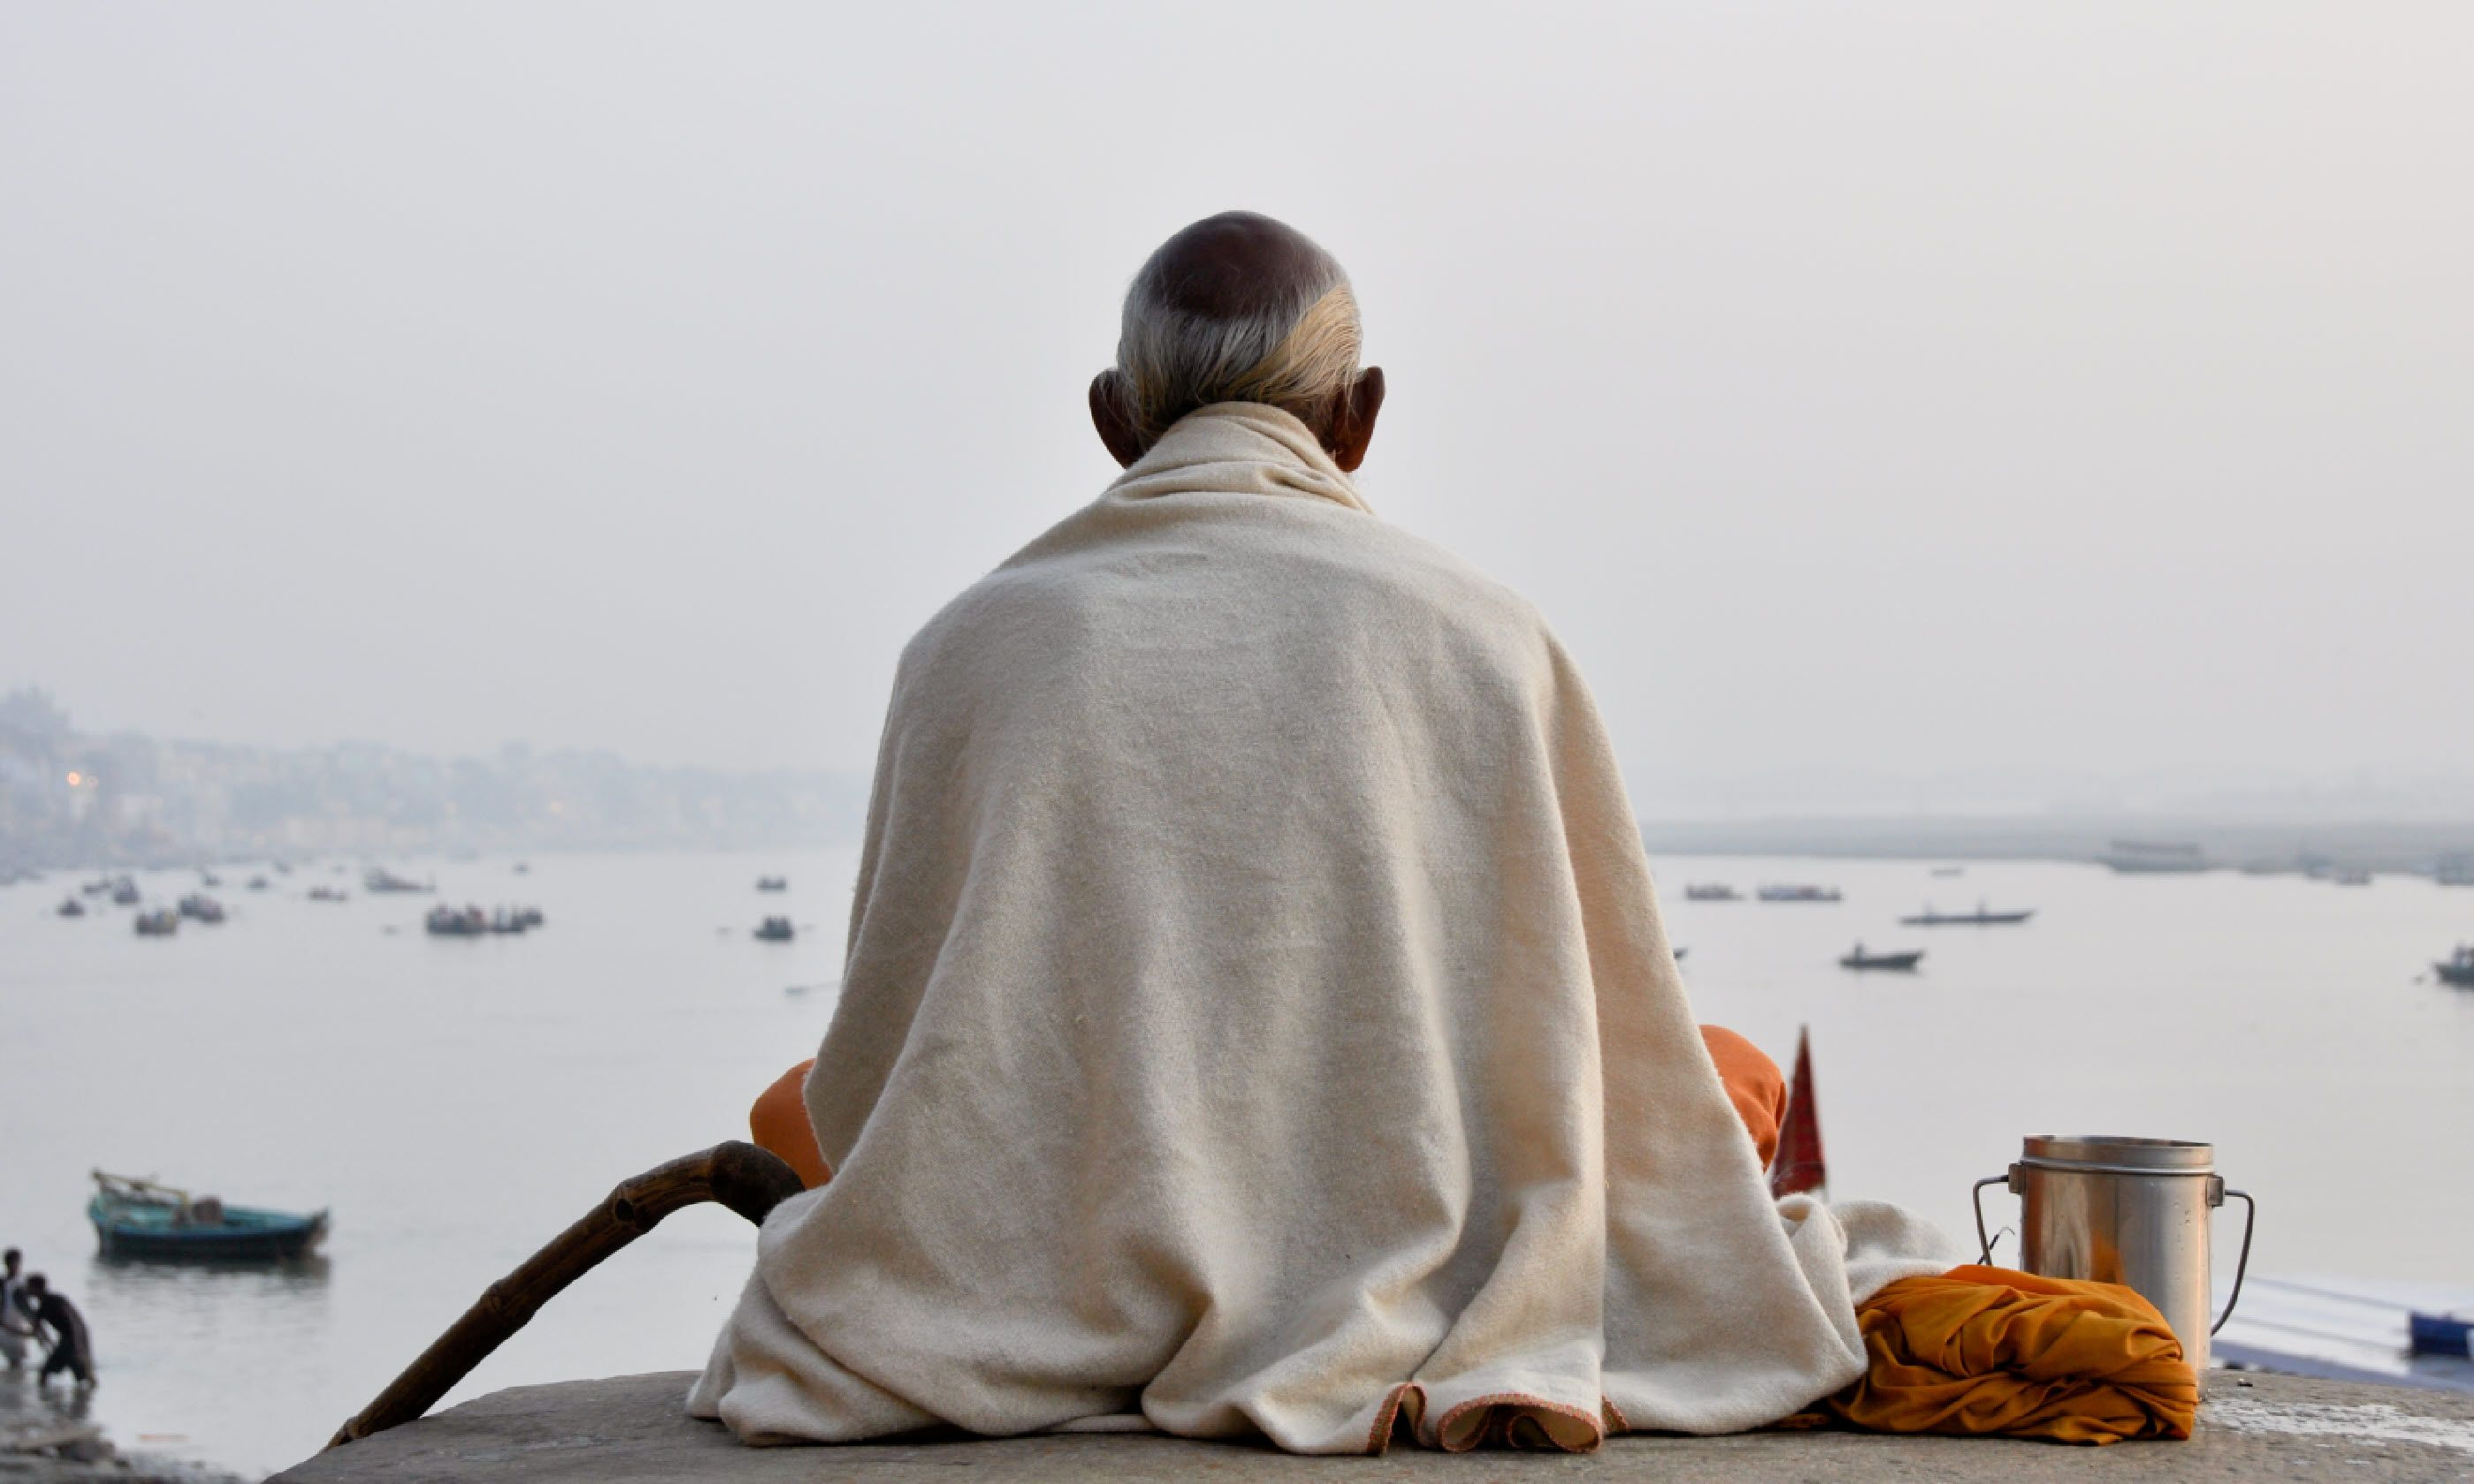 Sadhu praying at the ghats in Varanasi (Shutterstock)